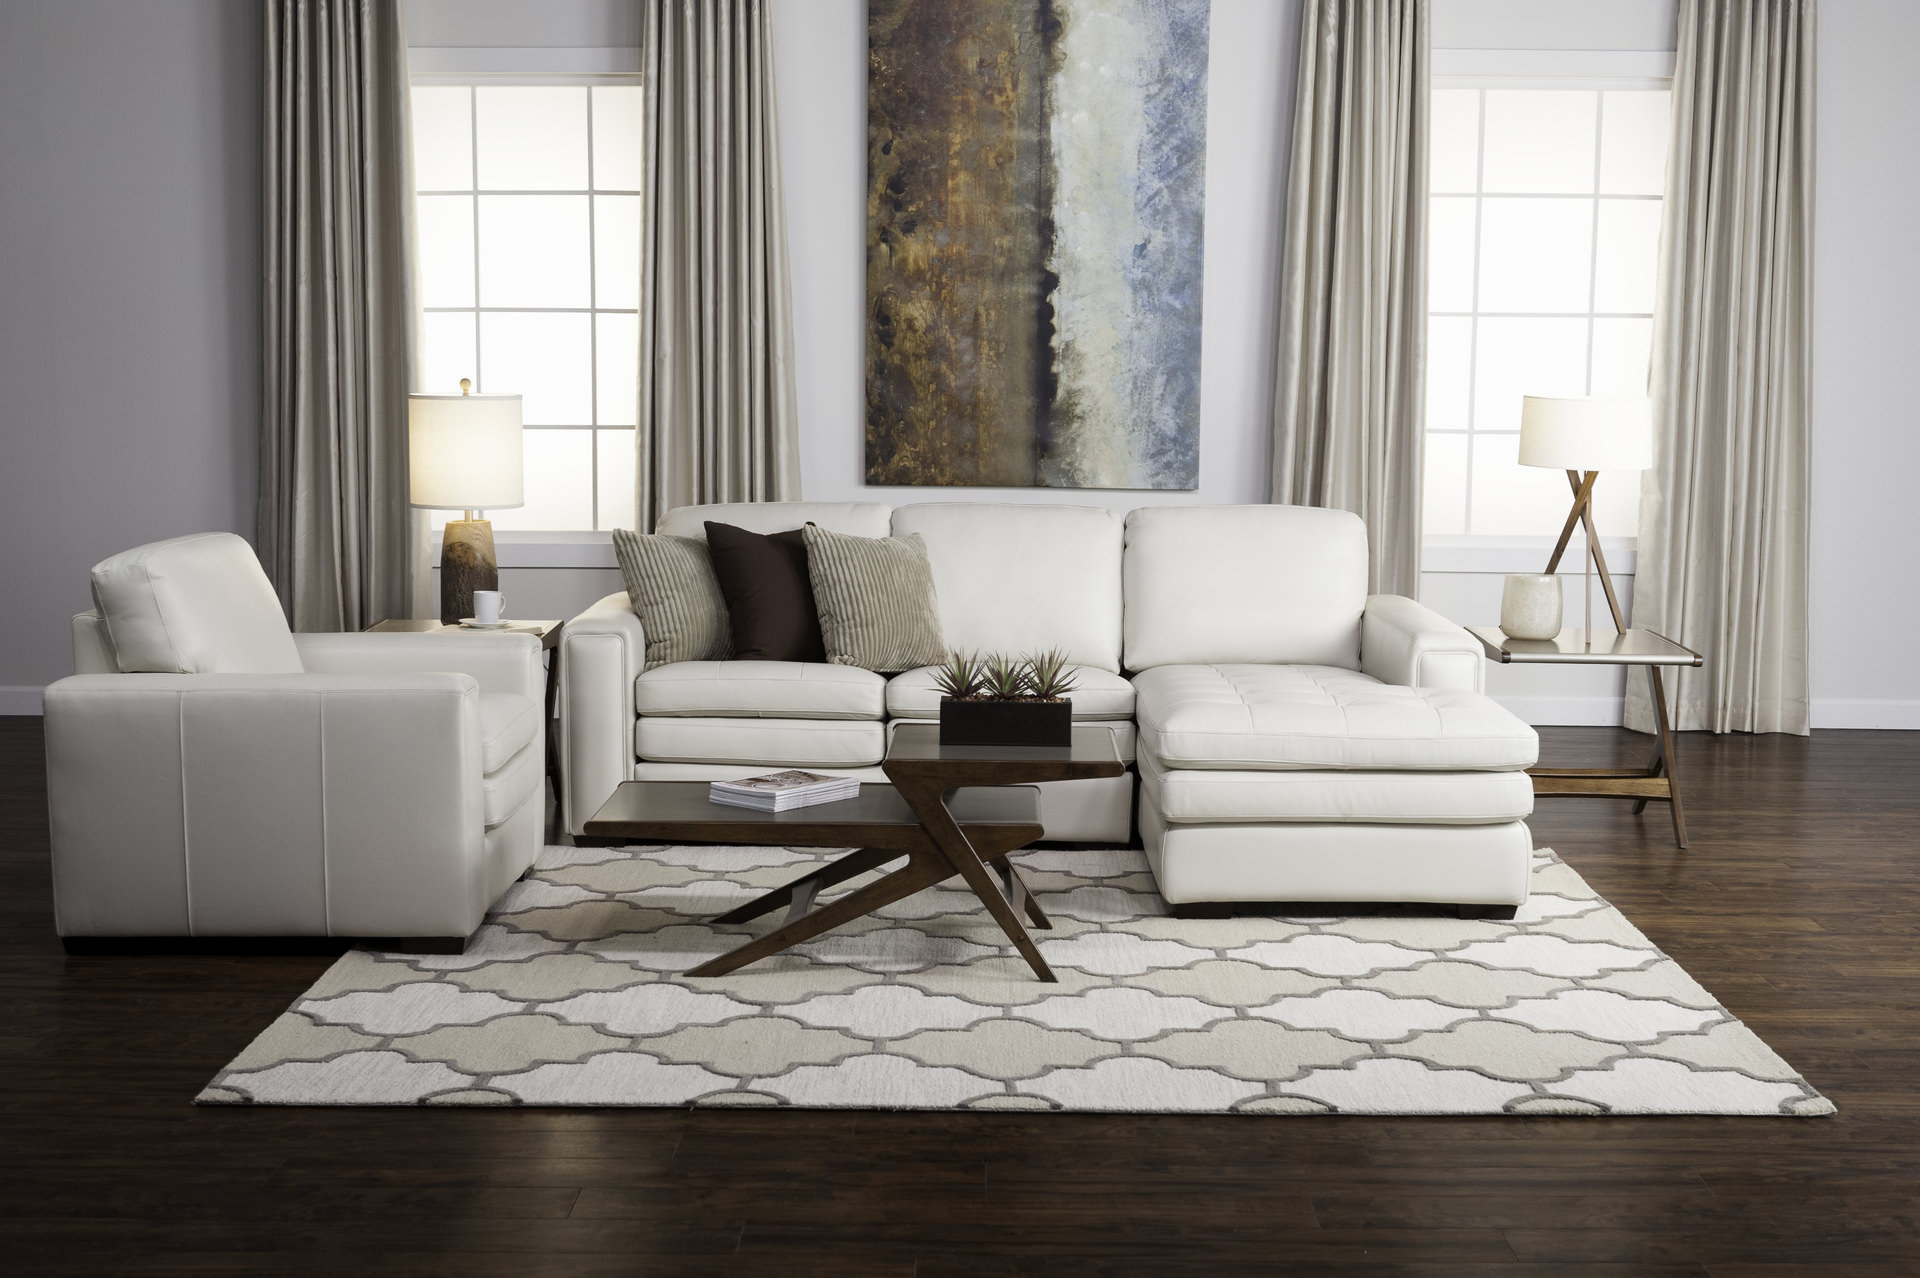 A Neutral Patterned Area Rug Like This Can Add An Interesting Design Element That Draws The Eye In Gentle Way Since It Mimics Tone Of Other